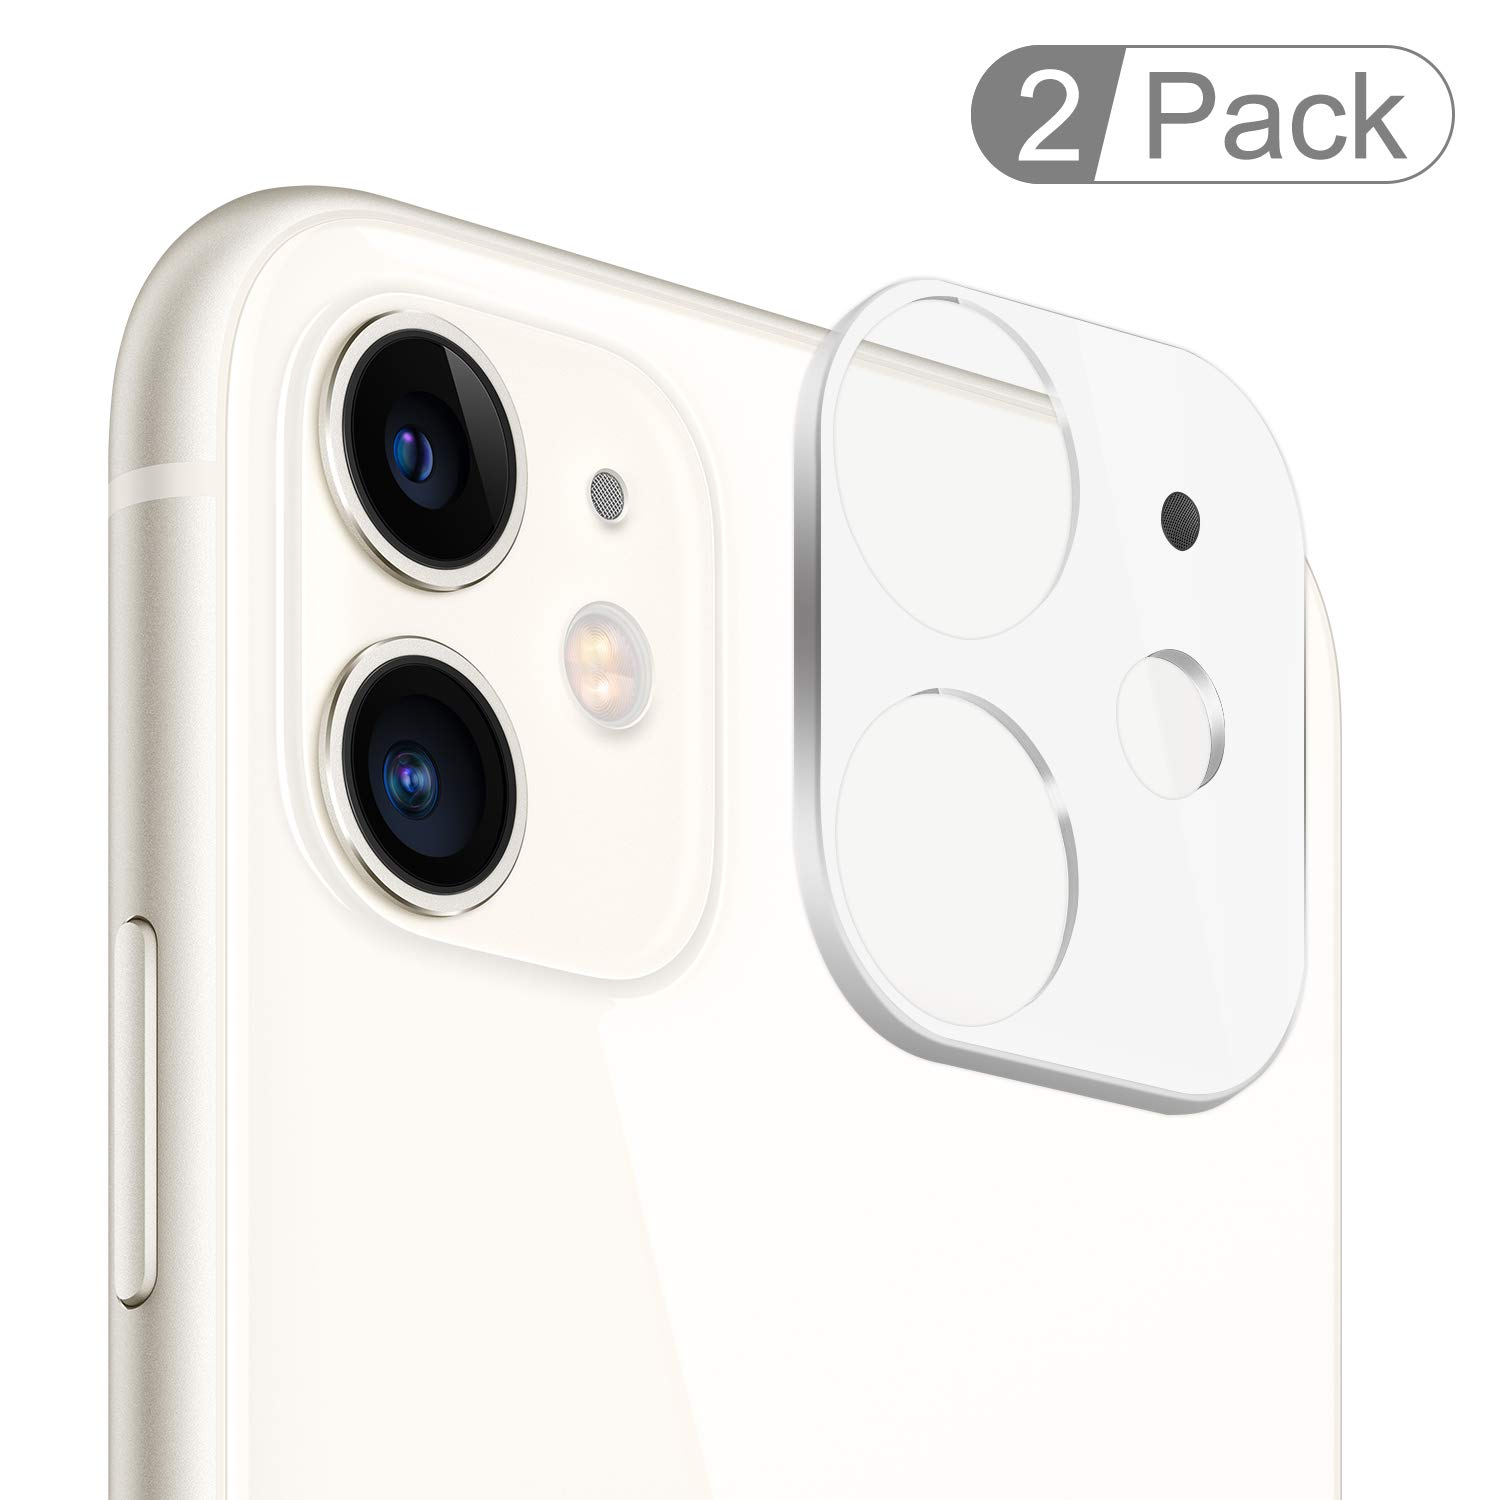 """(2 Pack) iPhone 11 Camera Lens Protector, BASE MALL Dustproof 9H Tempered Glass Camera Lens Screen Cover for iPhone 11 6.1"""", Anti-Scratch, Anti-Shatter (White)"""